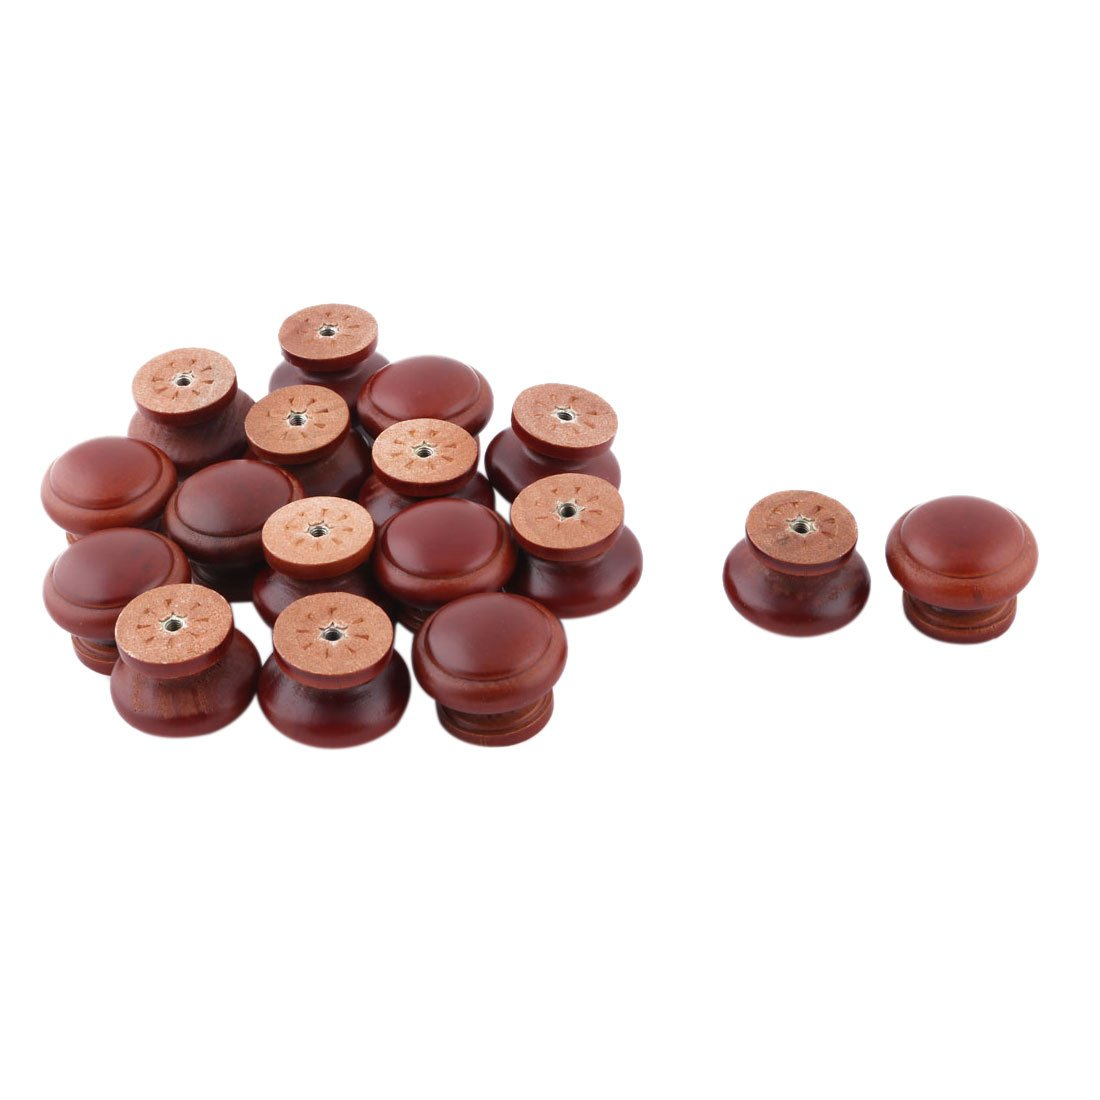 uxcell Wood Hotel Home Round Door Cupboard Closet Handle Grip Pull Knob 17pcs Brown